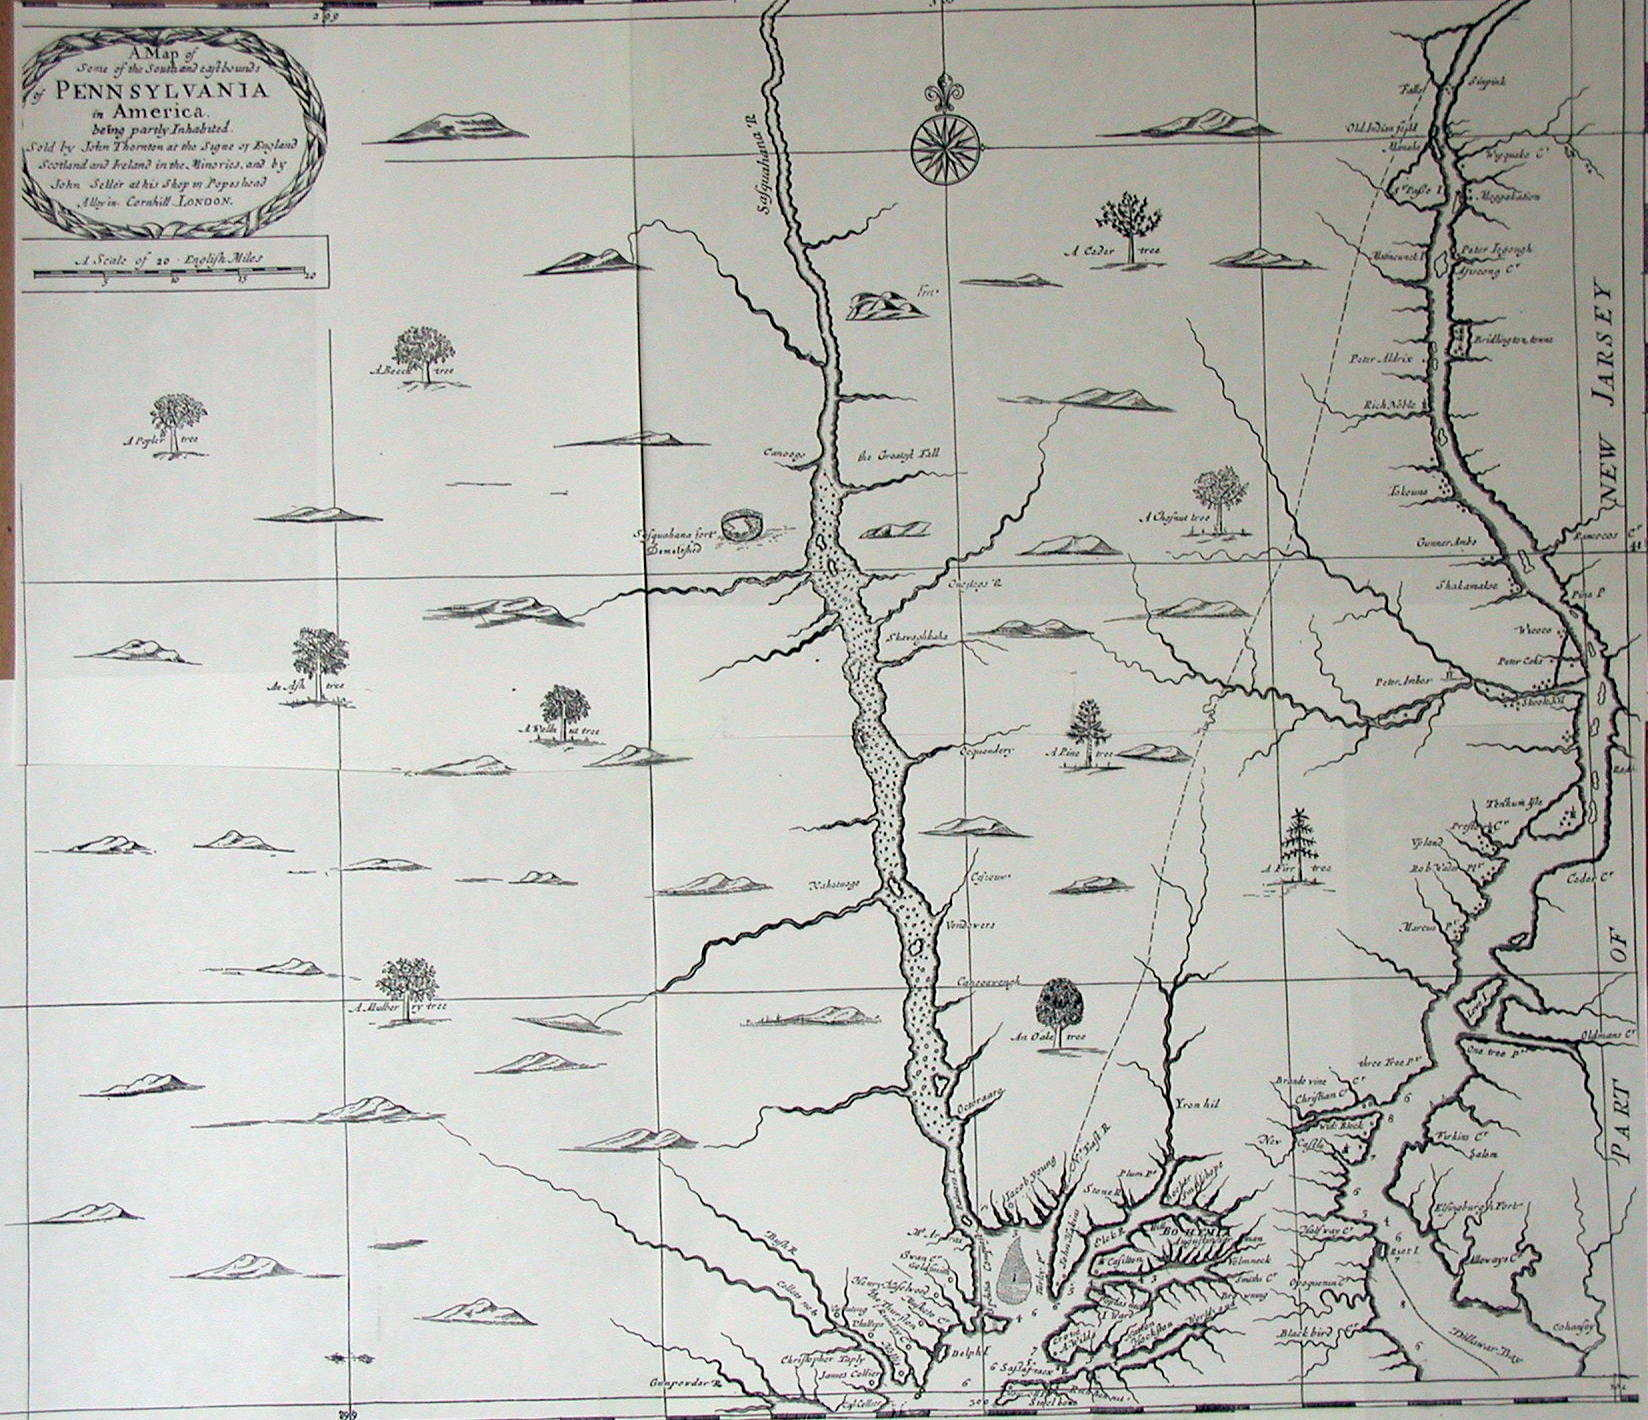 168039s Pennsylvania Maps